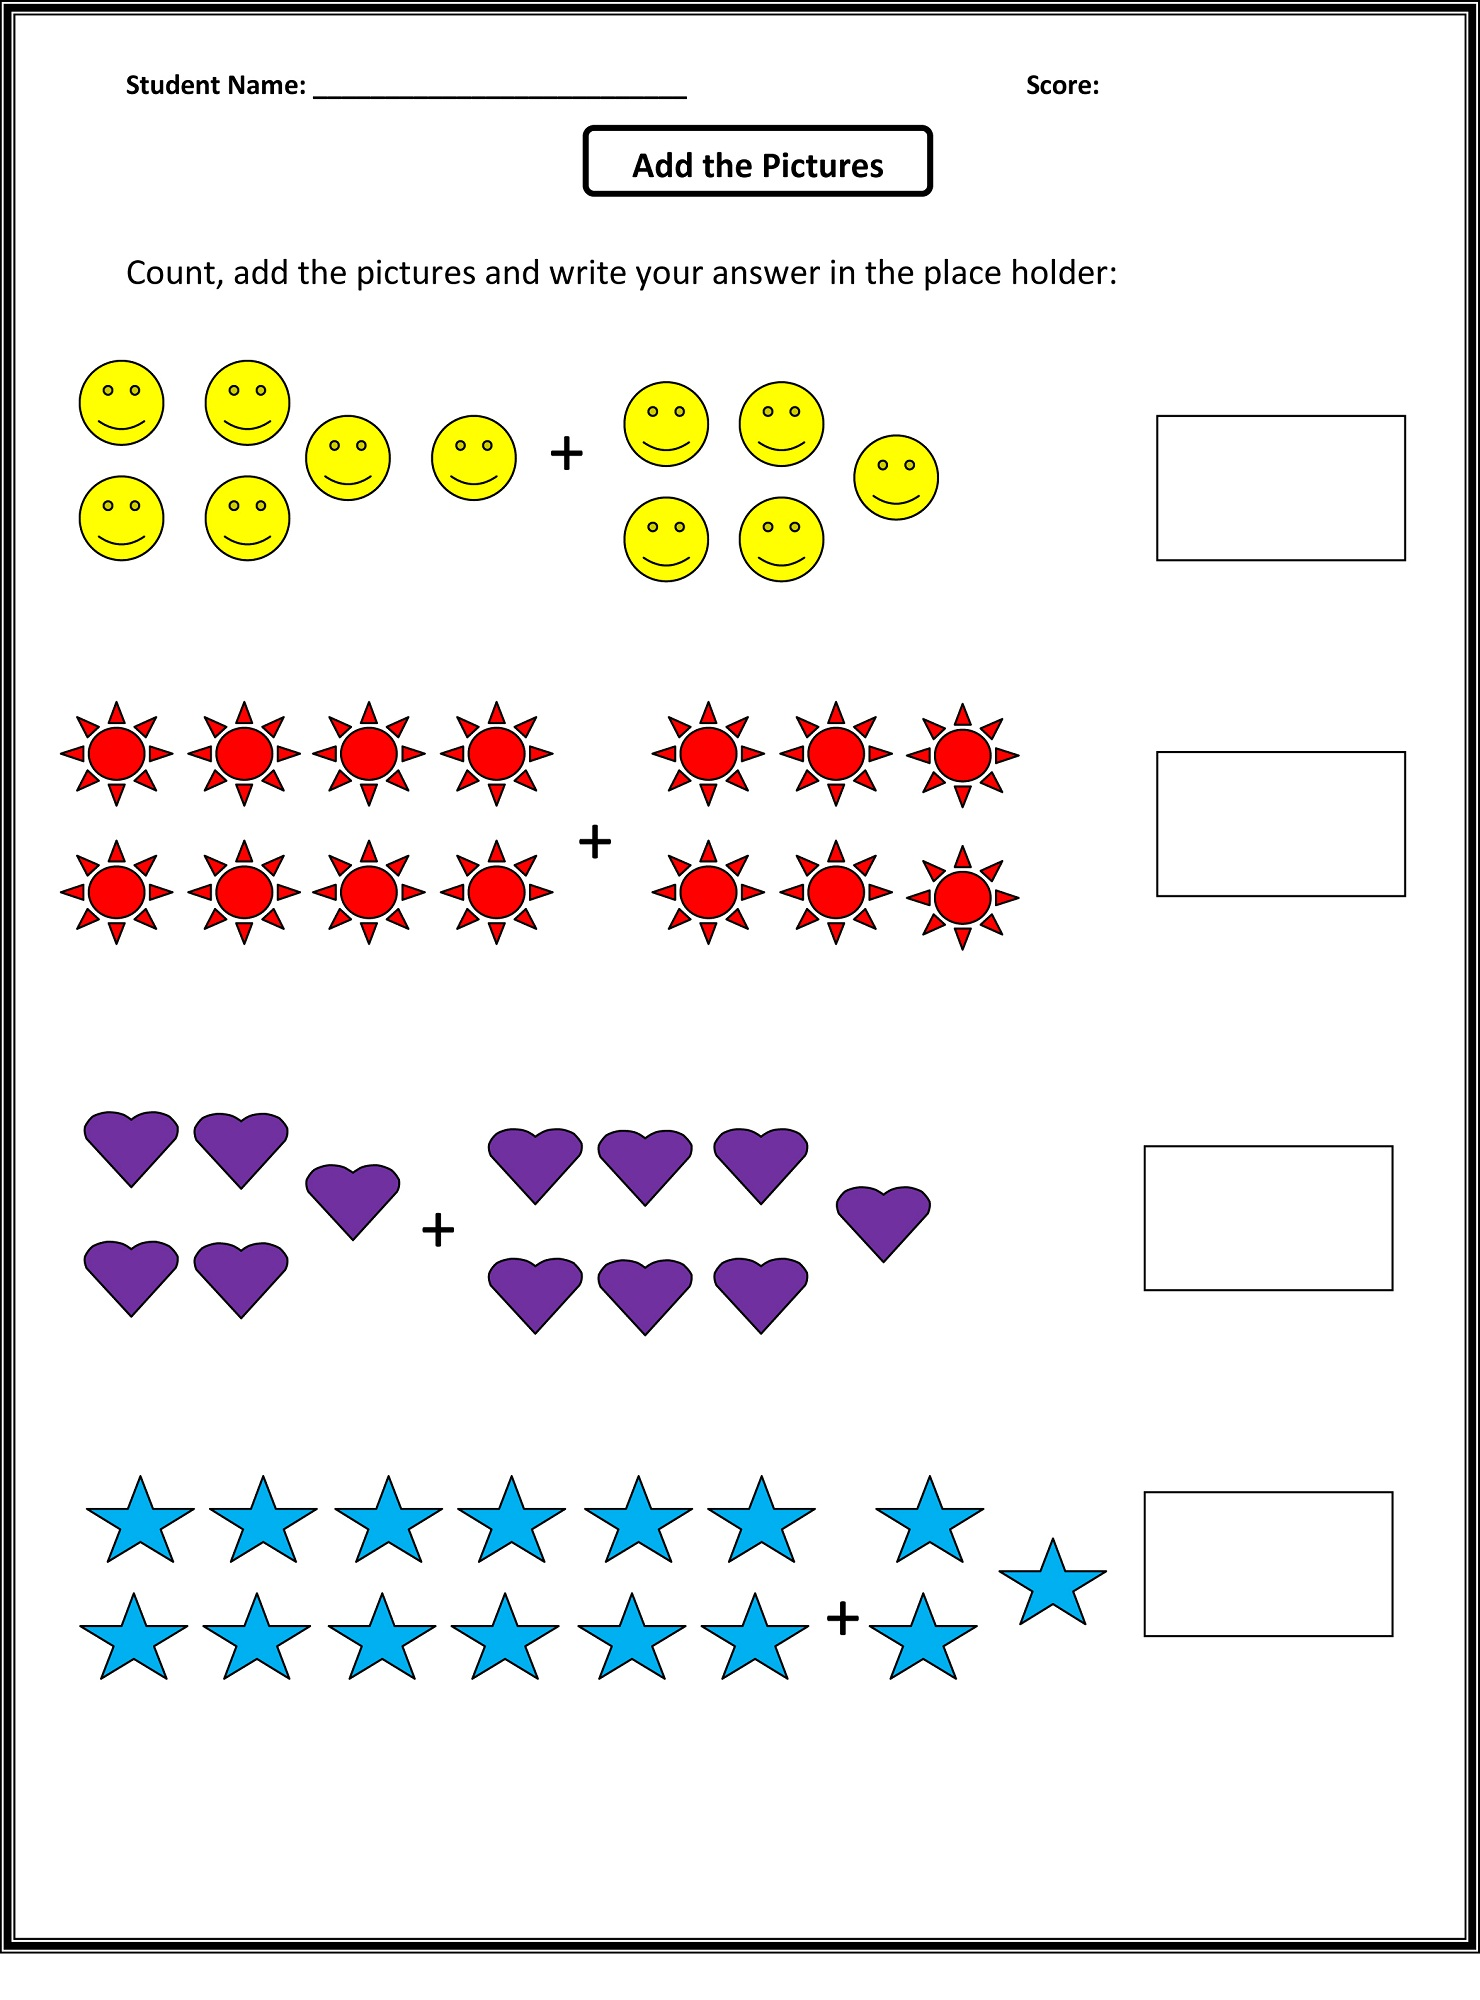 Worksheet Worksheet Grade 1 grade 1 worksheets for learning activity shelter addition math